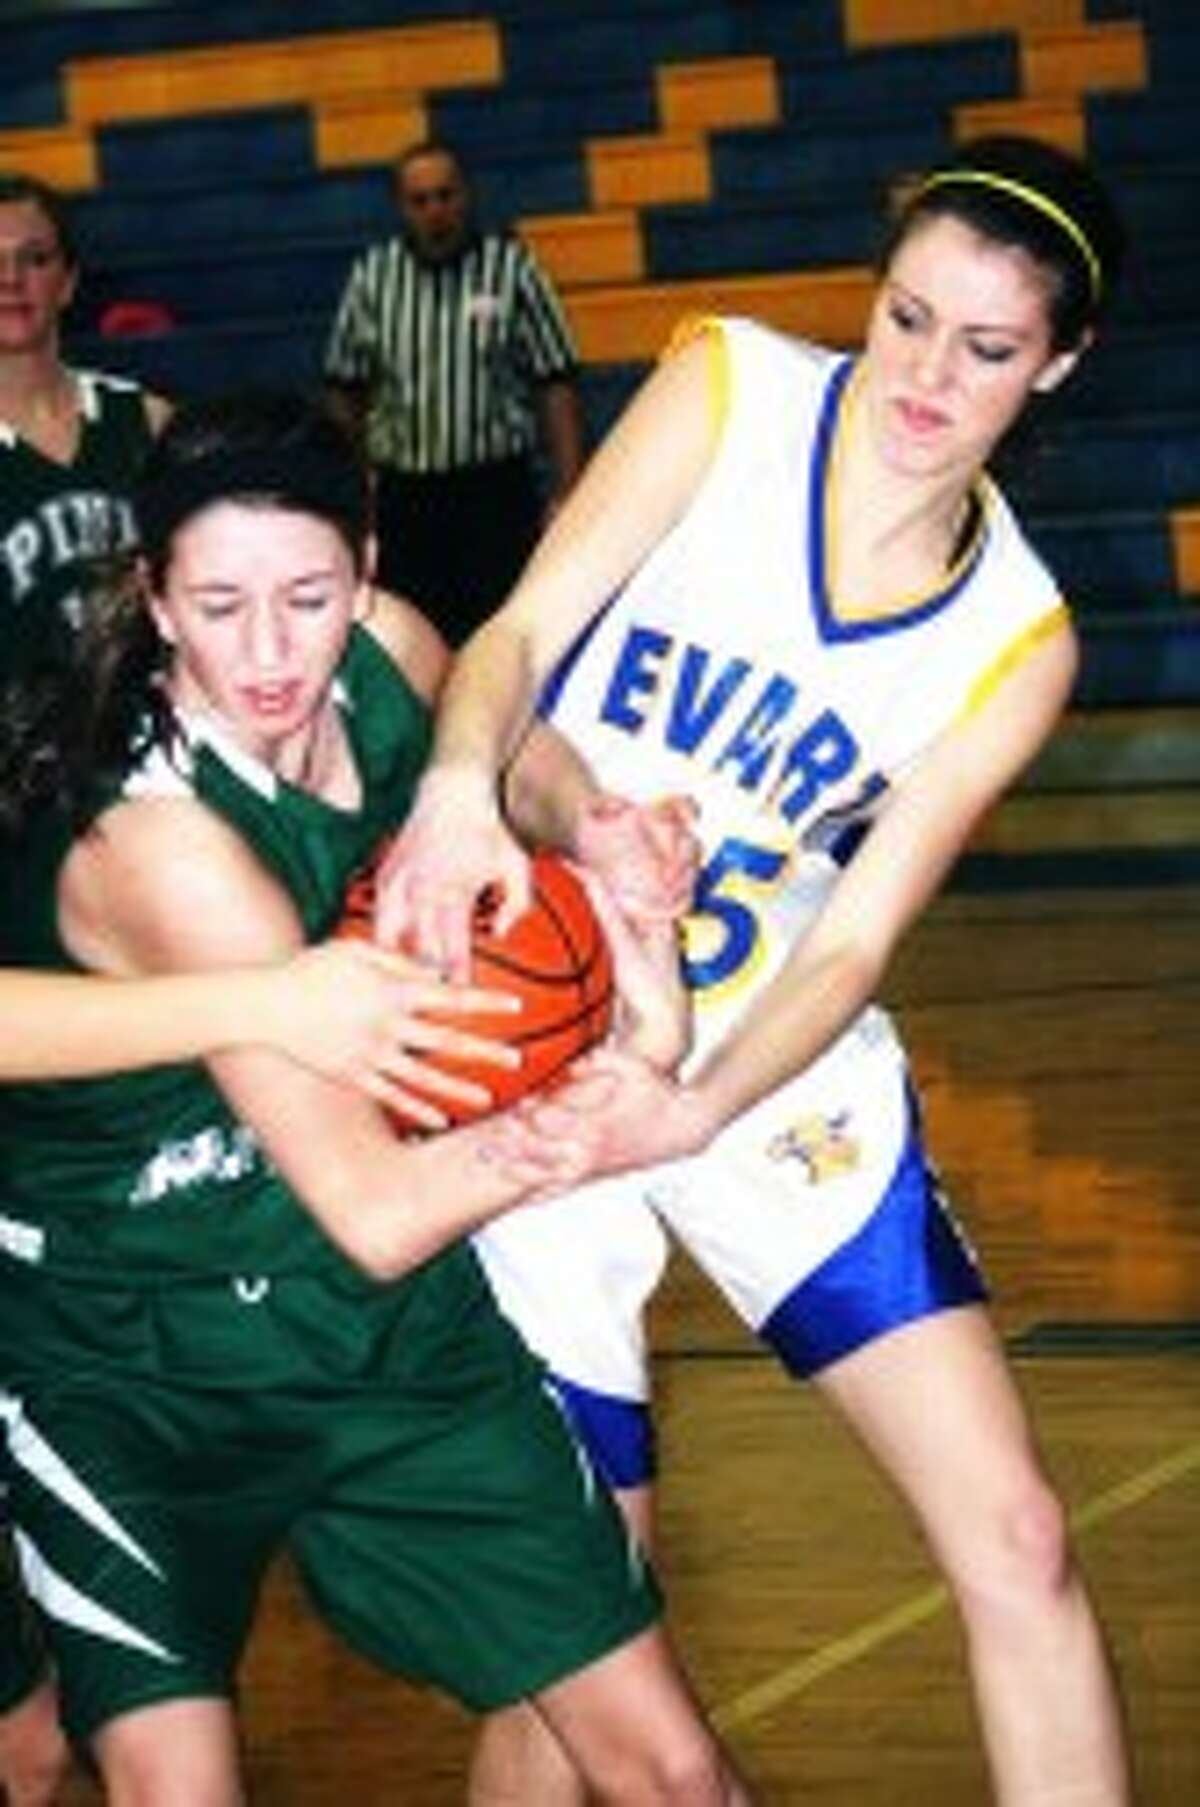 TOP TEAM: Mara VanOrder (right) tries to get control of the ball against an opponent. (File photo)